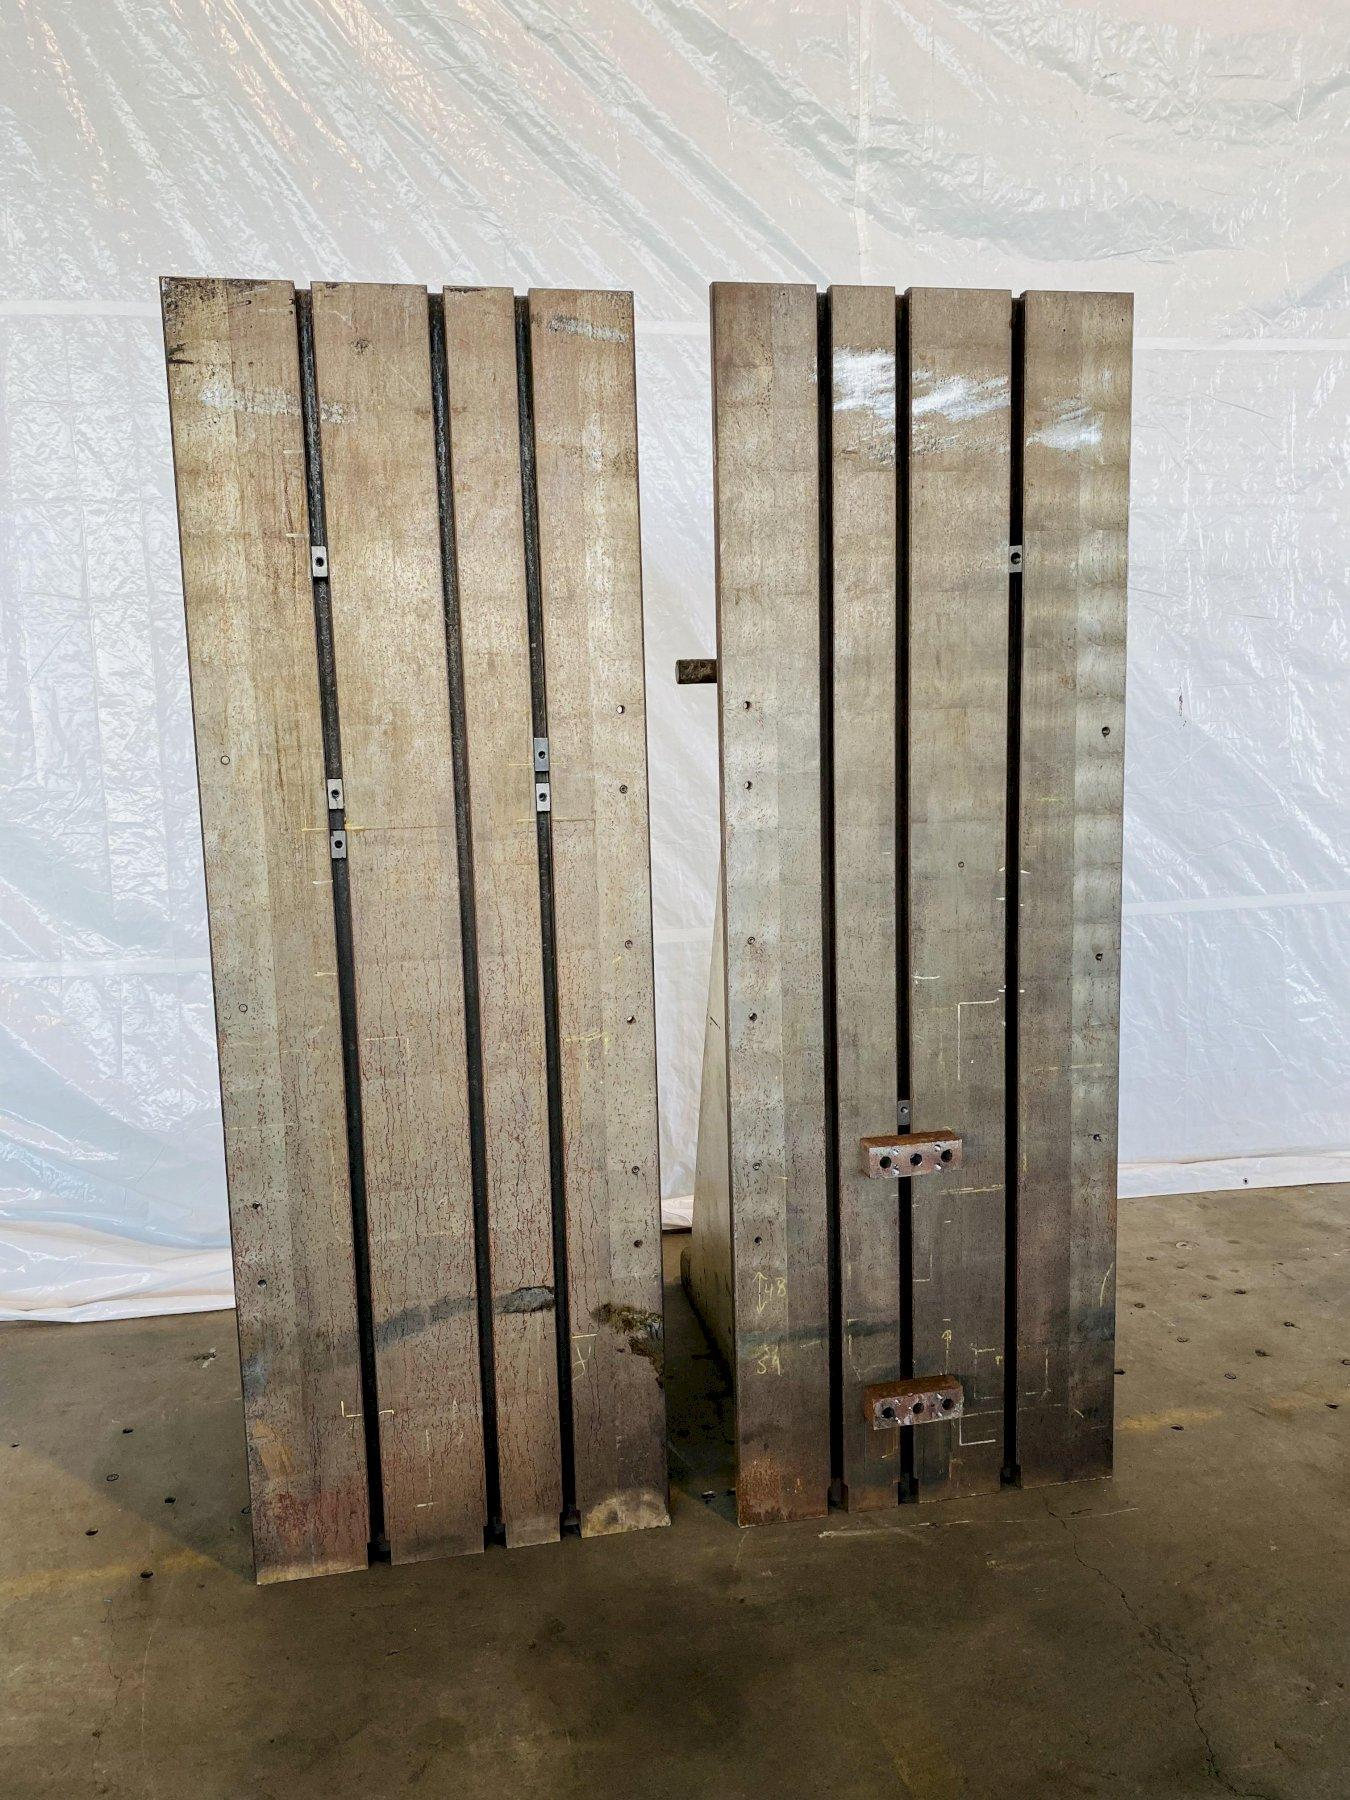 """96""""T X 32""""W X 48""""D T SLOTTED ANGLE PLATES. STOCK # 0737721"""